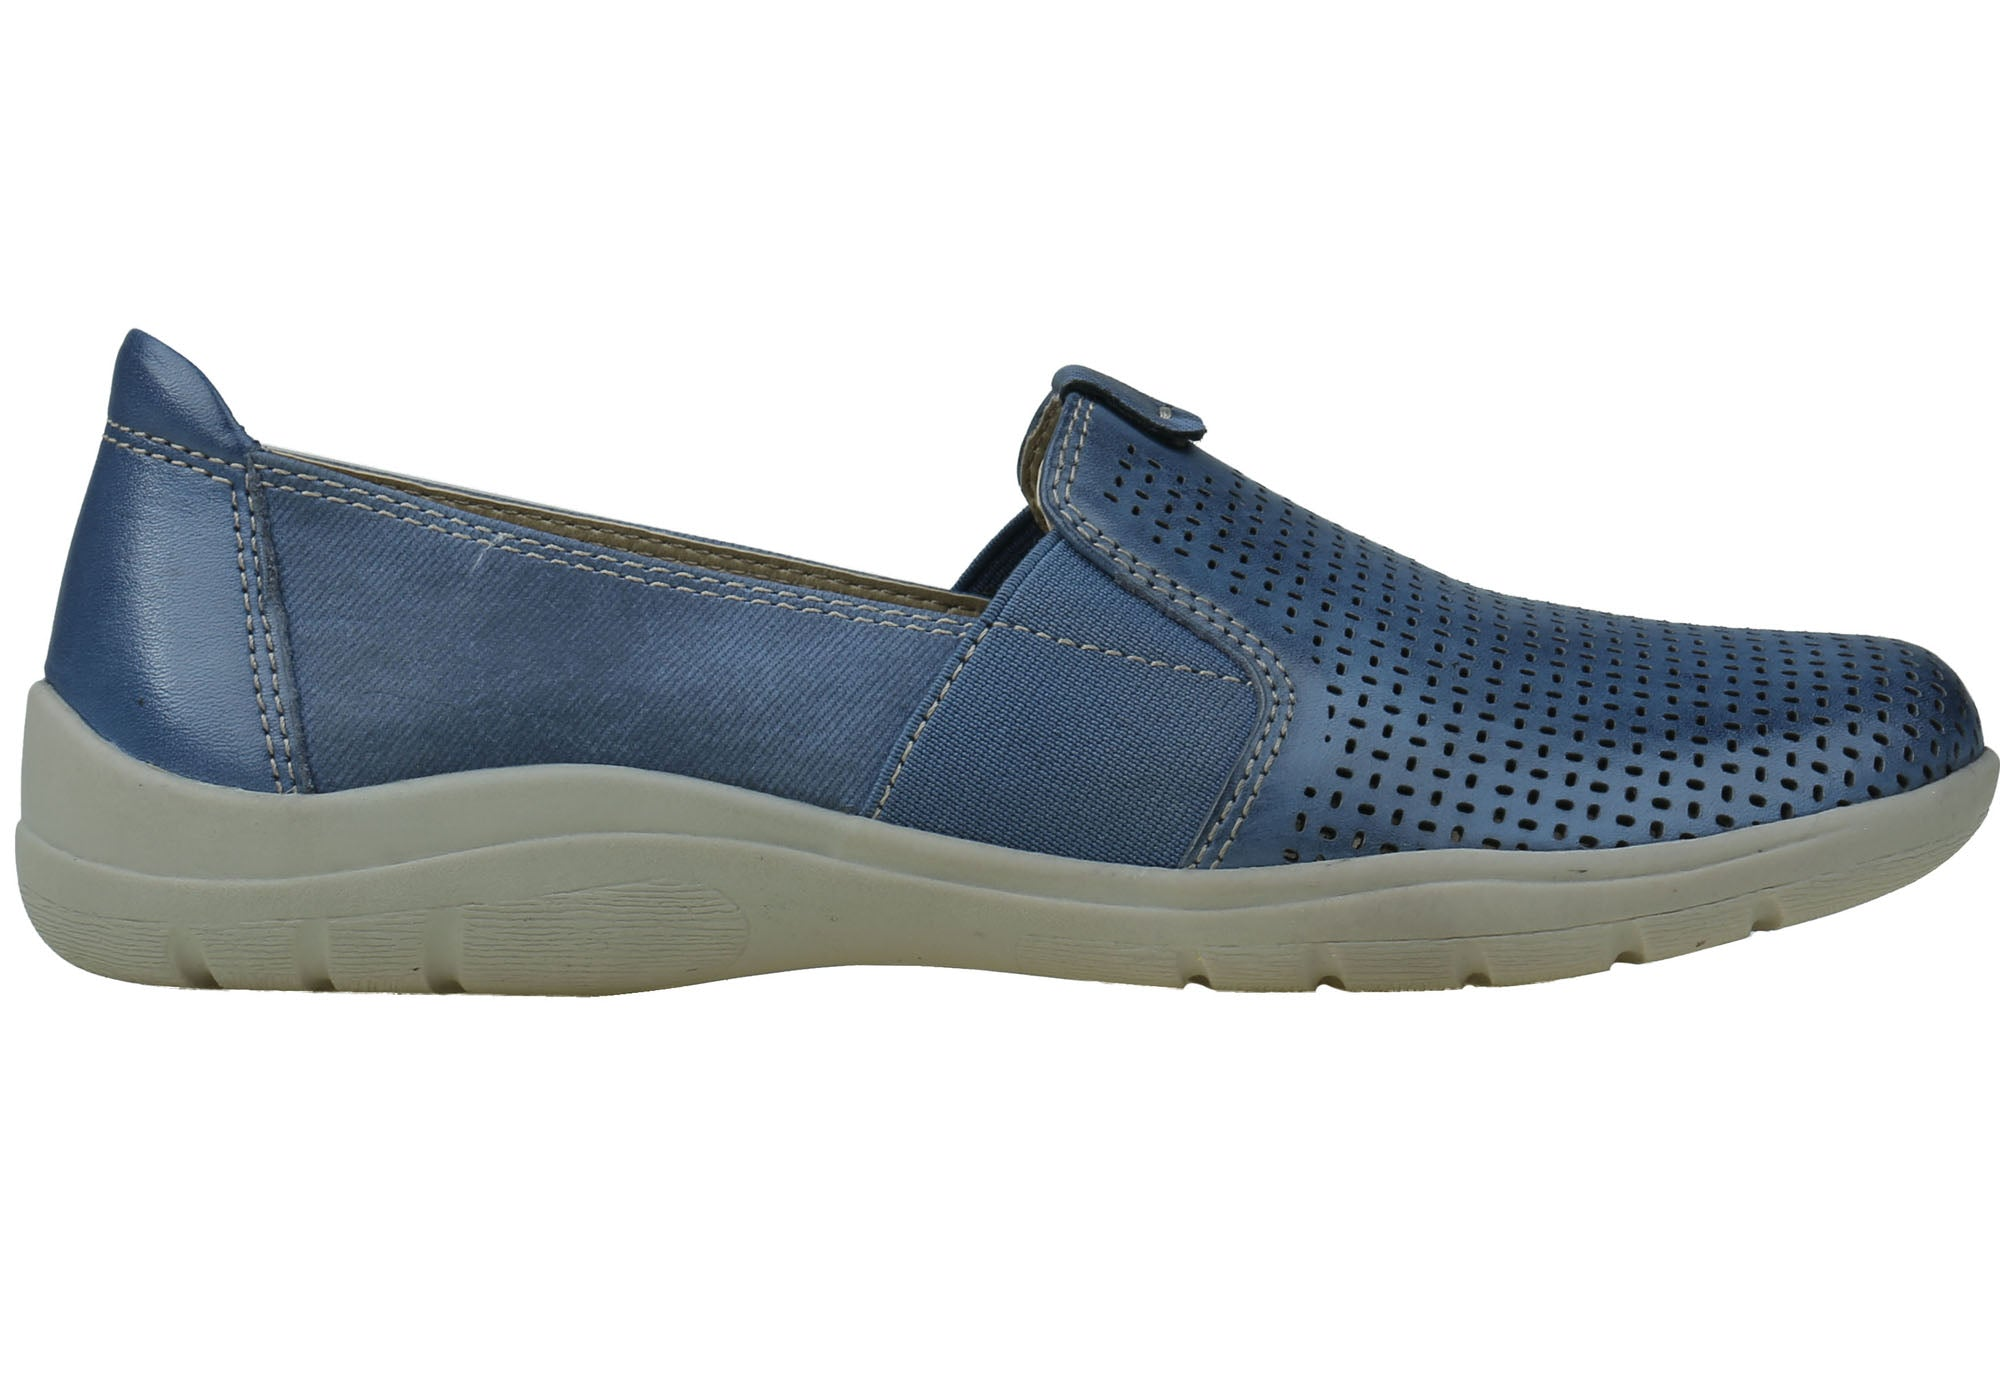 db5eda51a500 ... Womens Comfortable Casual Shoes With Arch Support. Sapphire ...